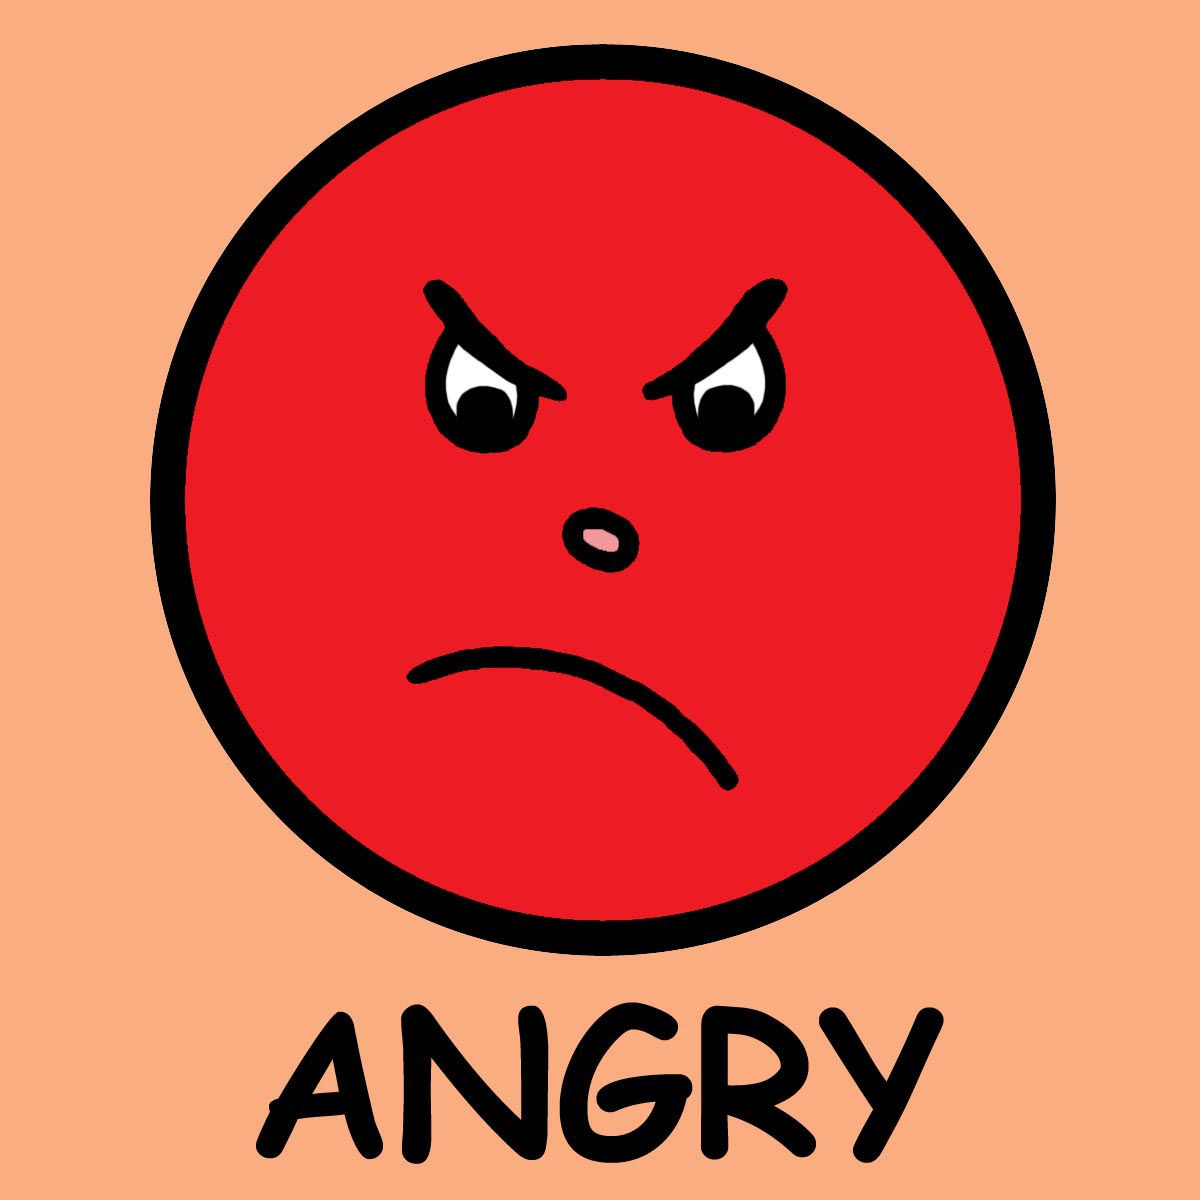 Angry Faces Emotions Clip Art N3 free image.